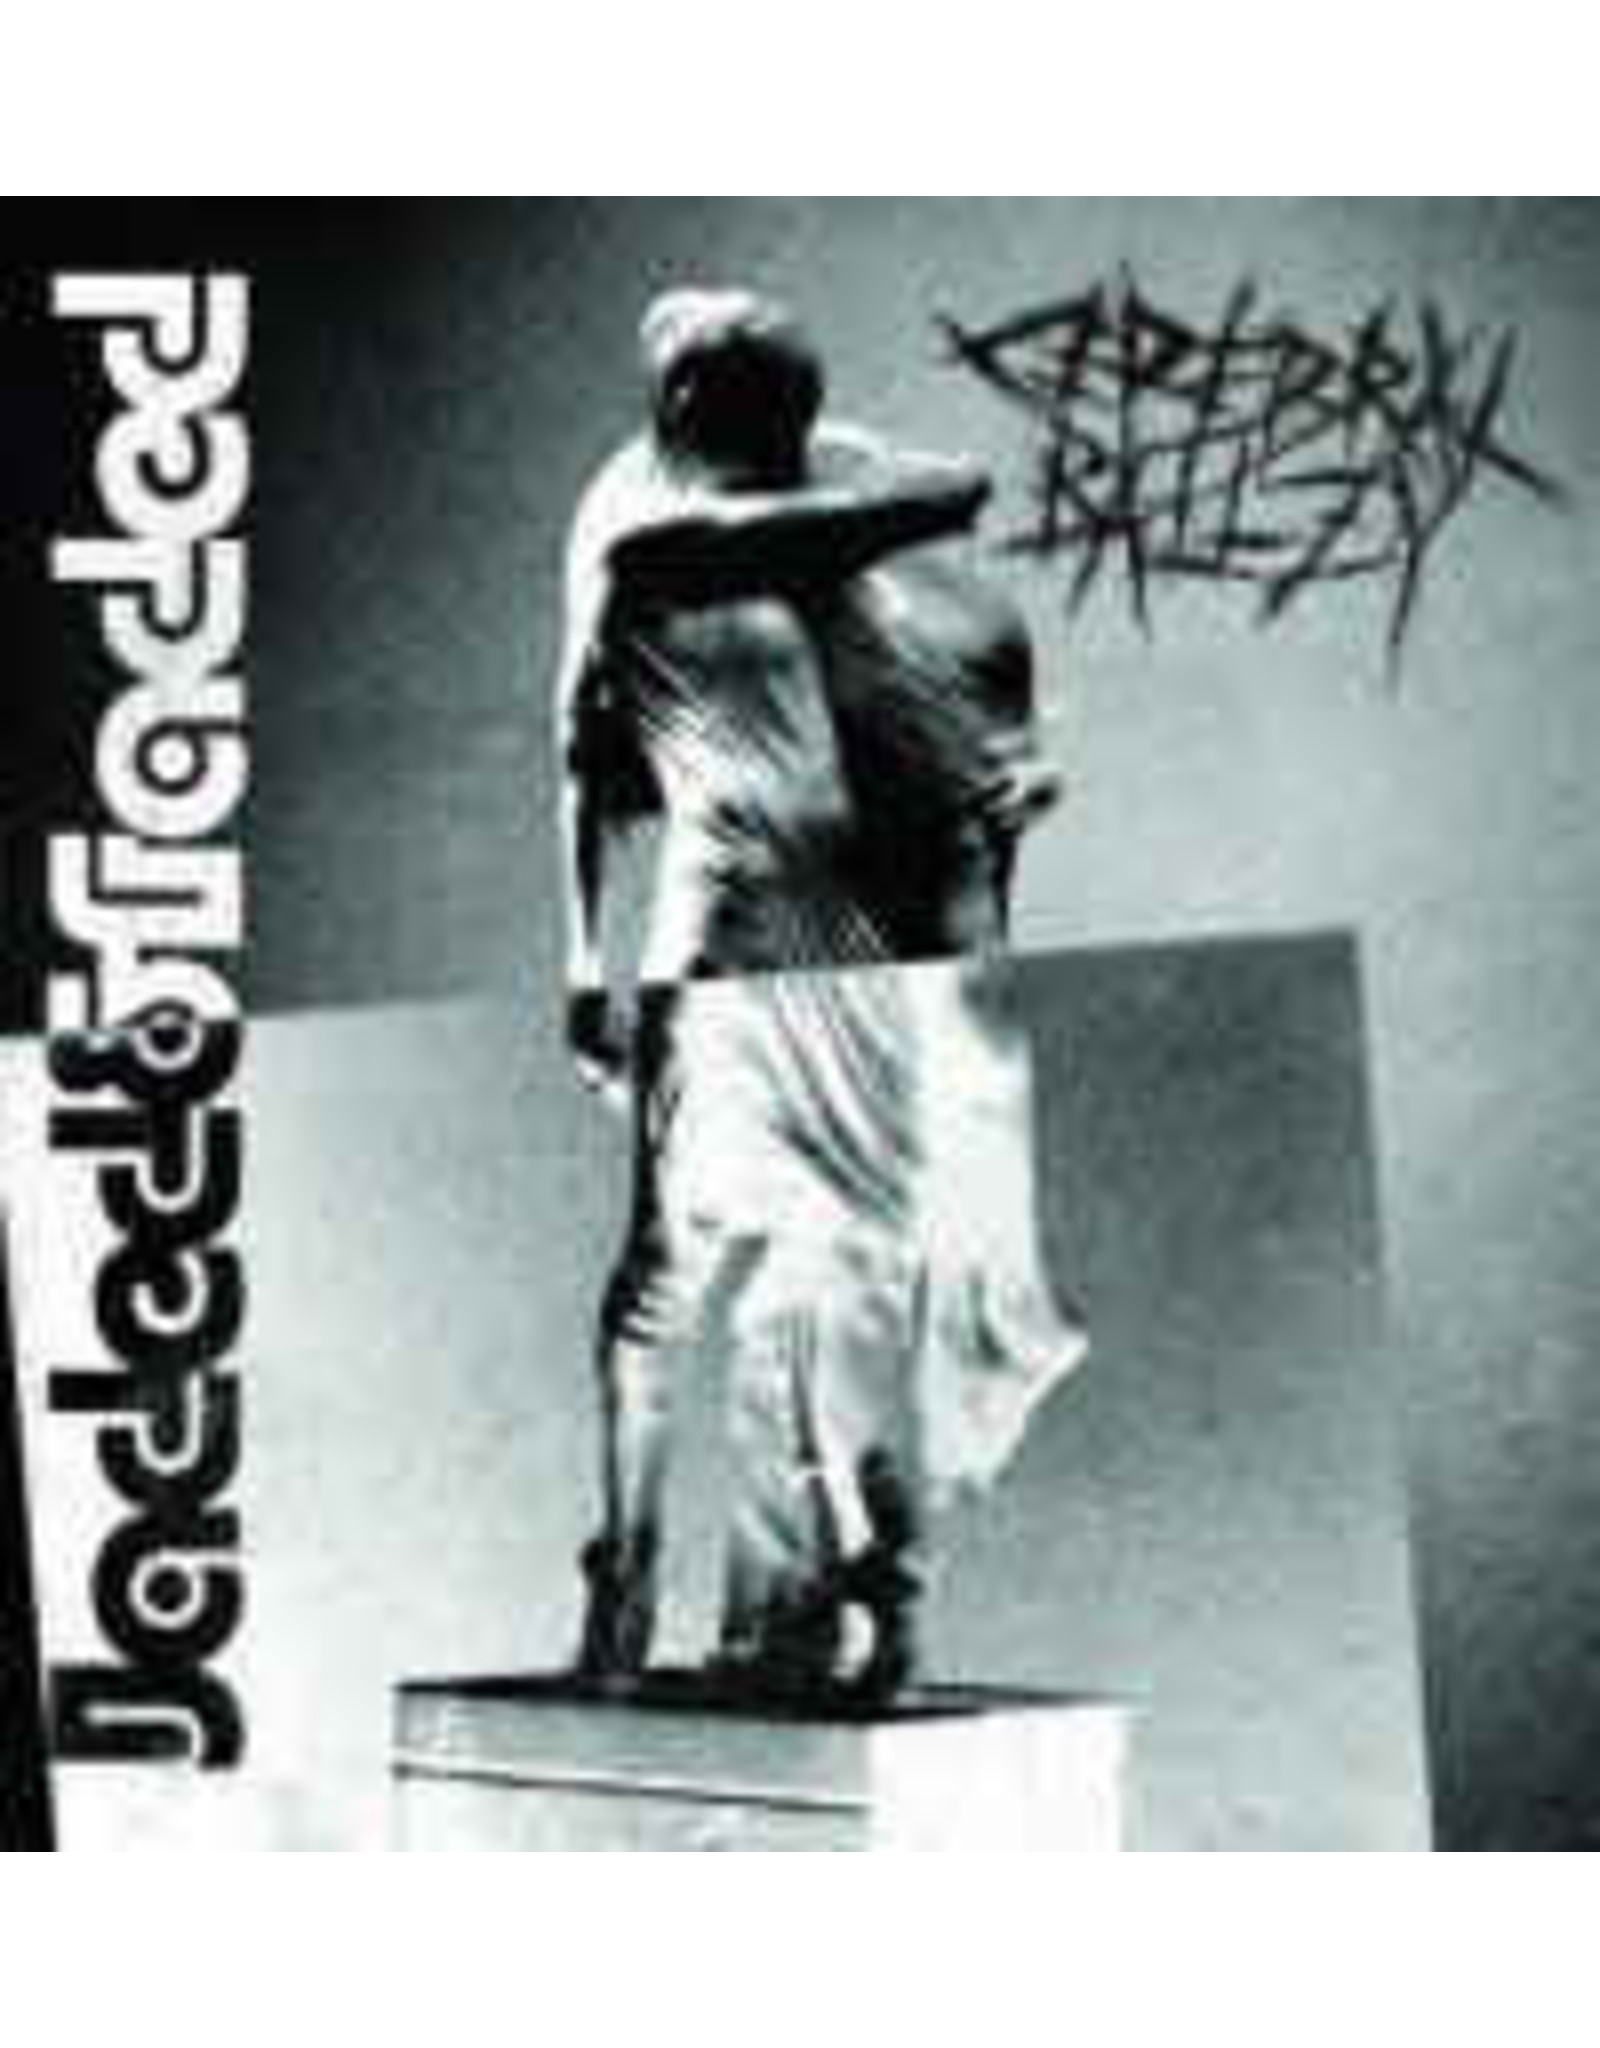 Cerebral Ballzy - Jaded and Faded LP